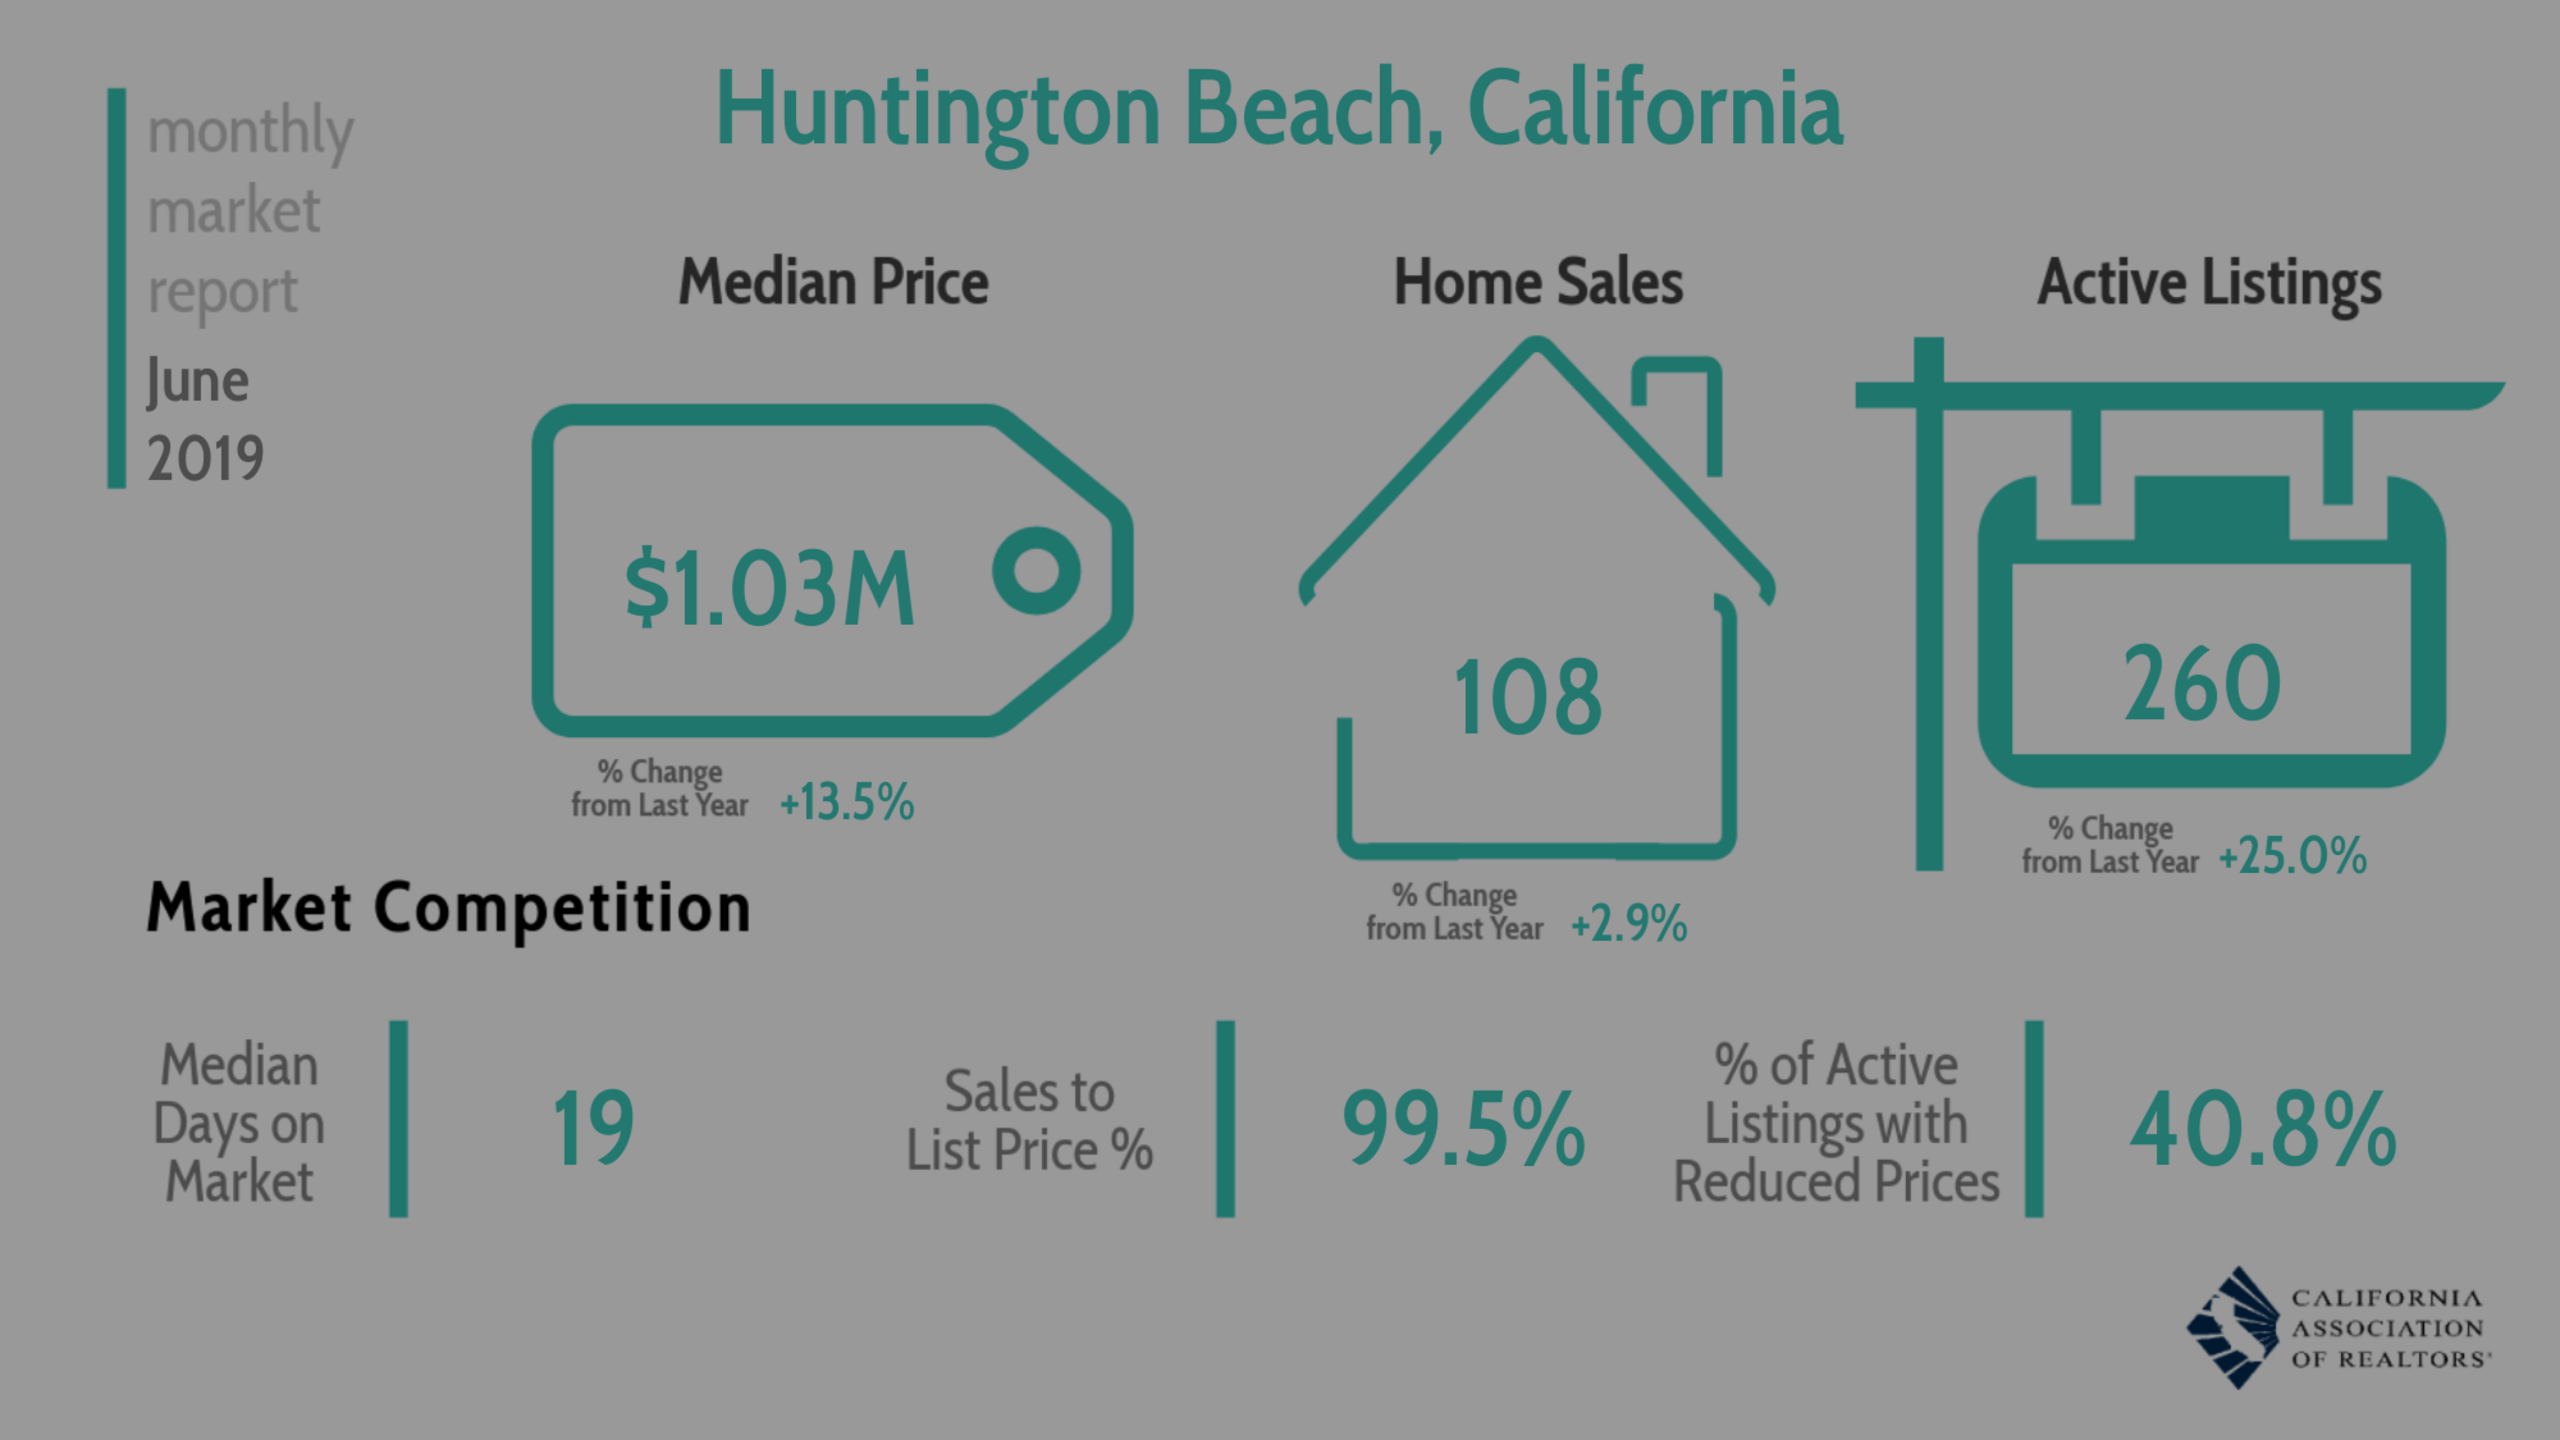 Monthly Market Report June 2019 – Huntington Beach